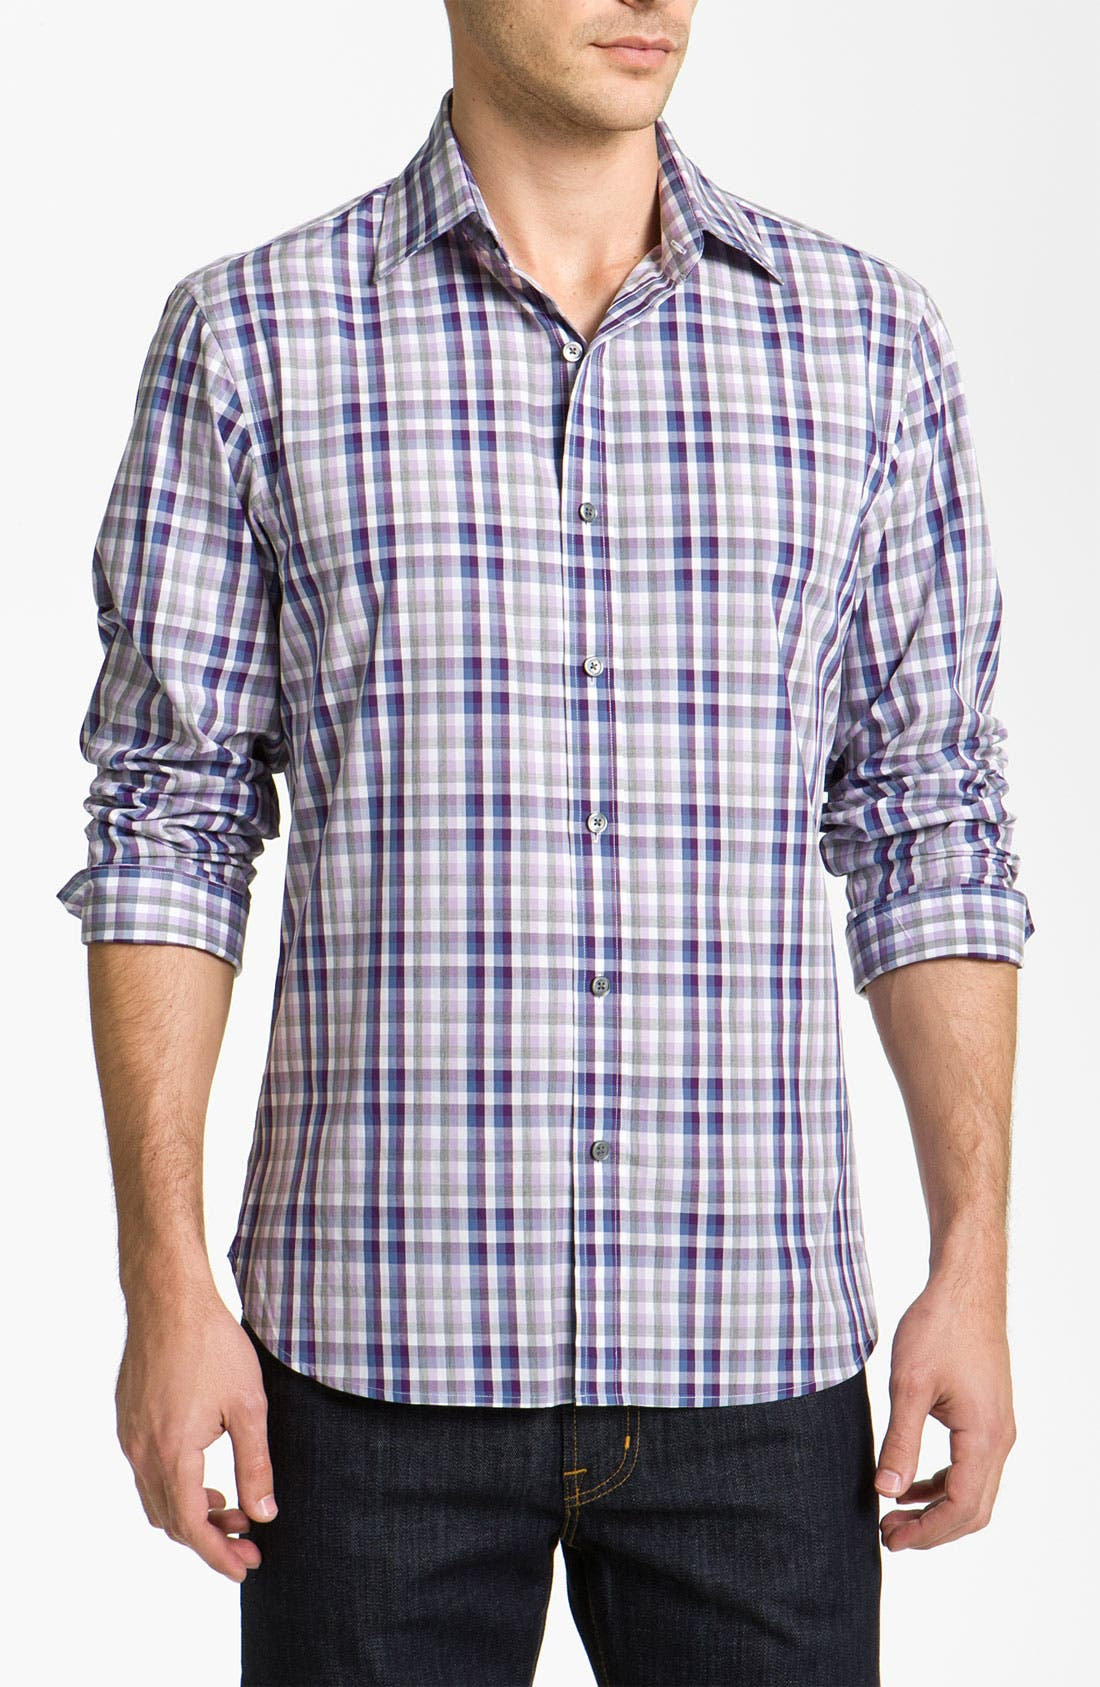 Main Image - Michael Kors 'Rhodes' Check Woven Shirt